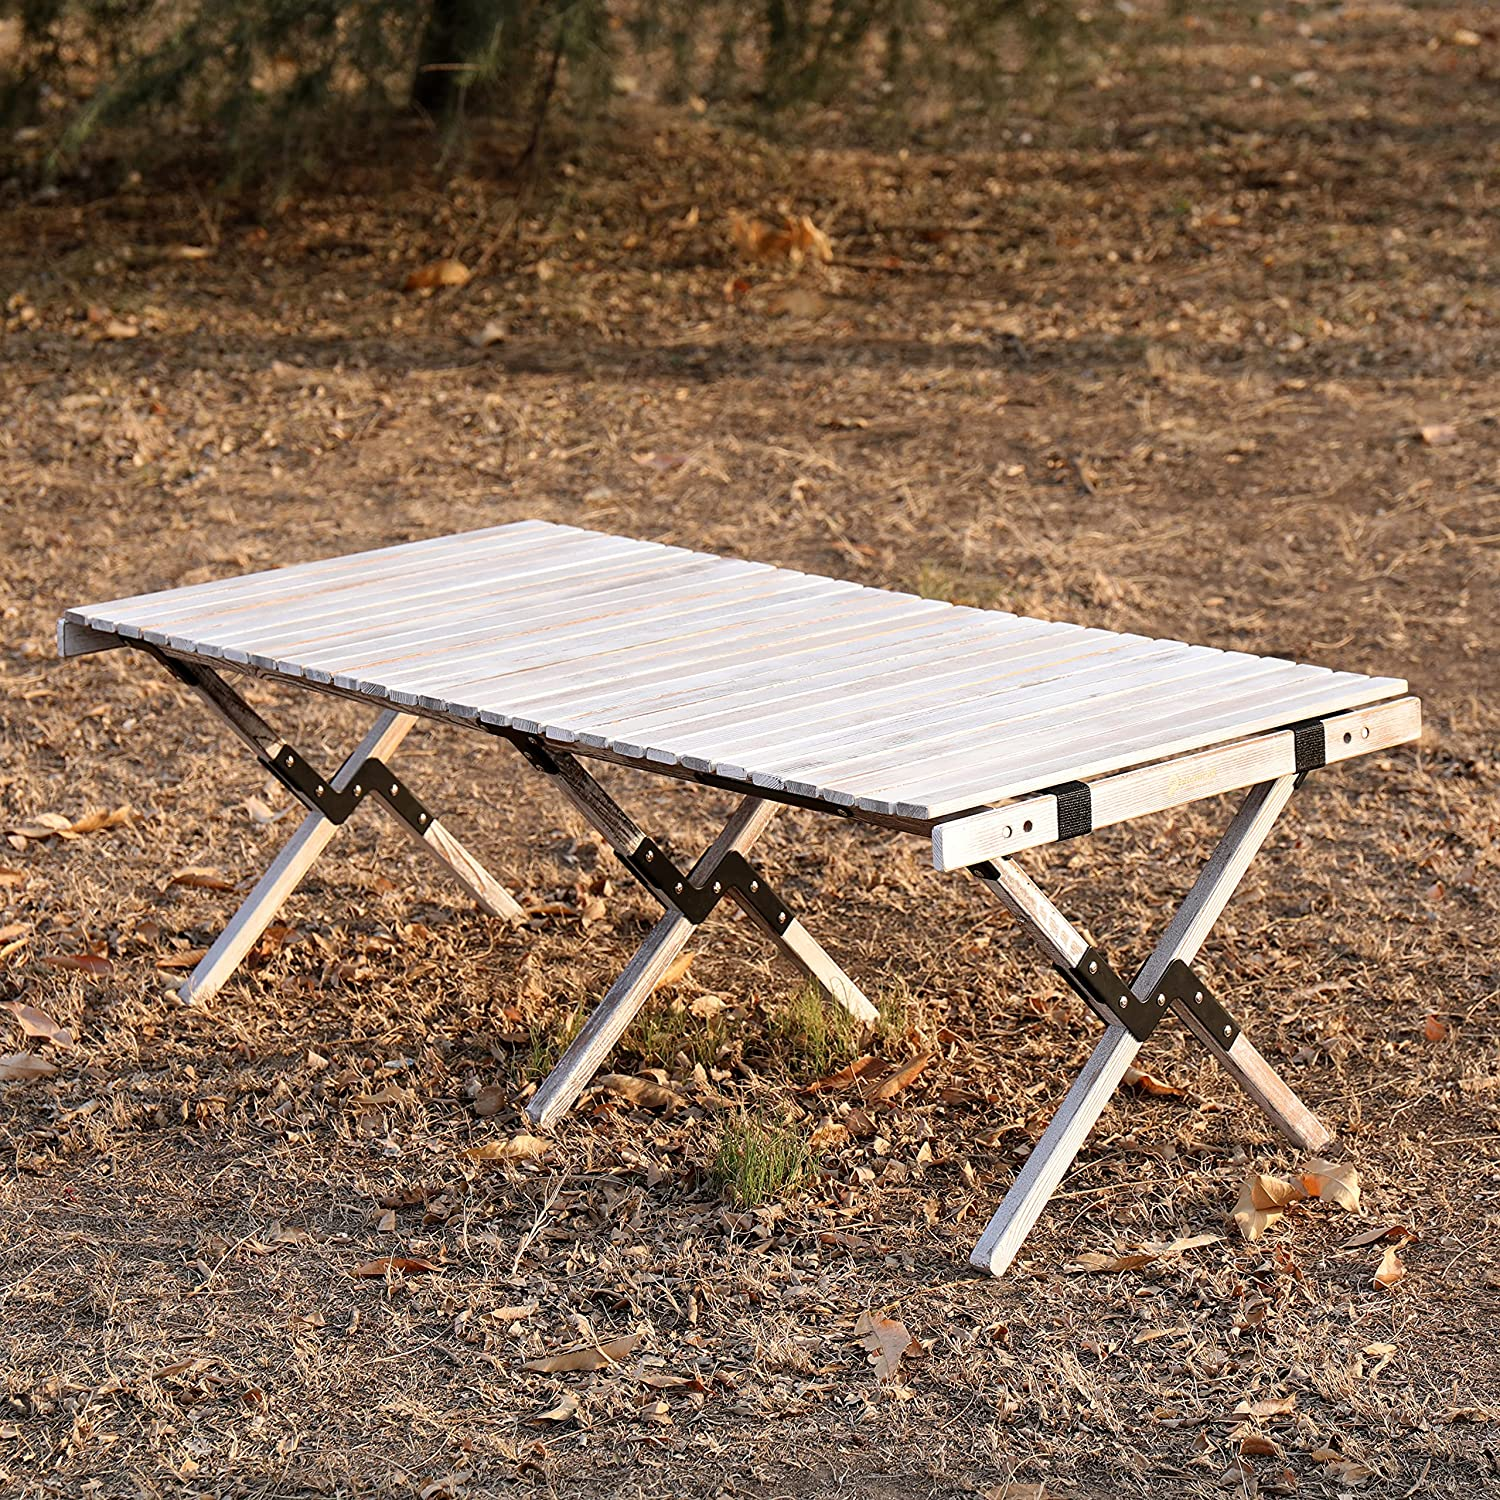 ZHONGLU CRAFTS Folding Table Camping Table Picnic Bench Portable Outdoor Indoor Wooden Picnic Table,Travel, Beach,Garden BBQ-Table in a Bag(Rustic White)